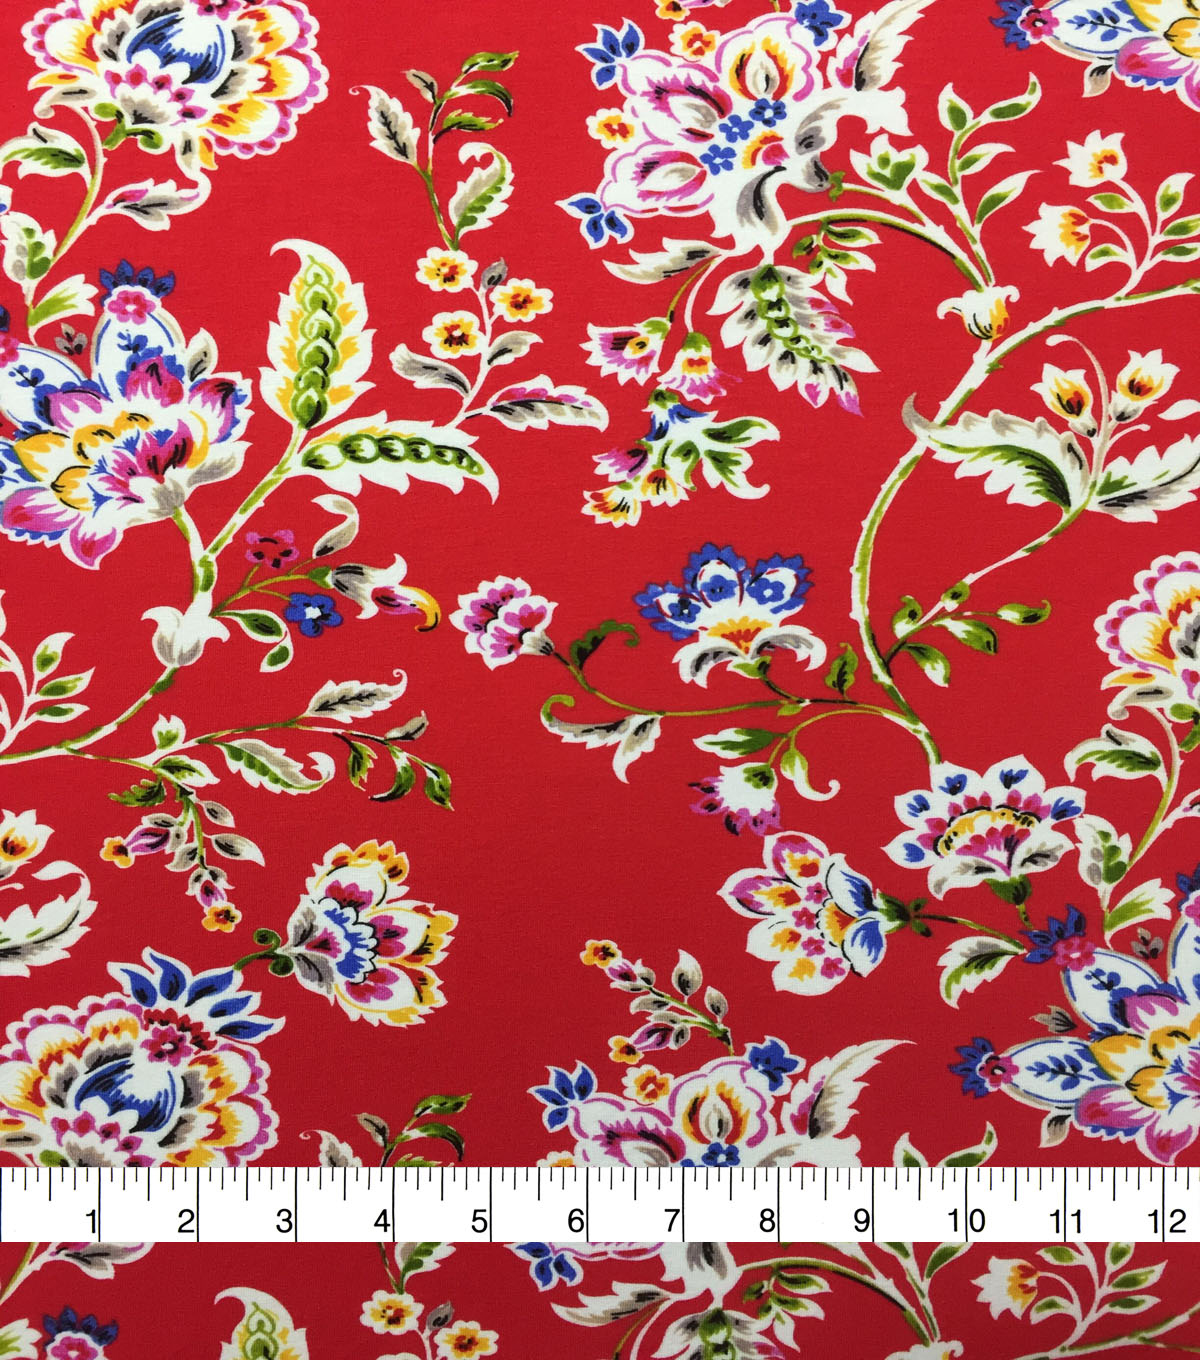 Knit Prints Rayon Spandex Fabric-Red Folk Floral